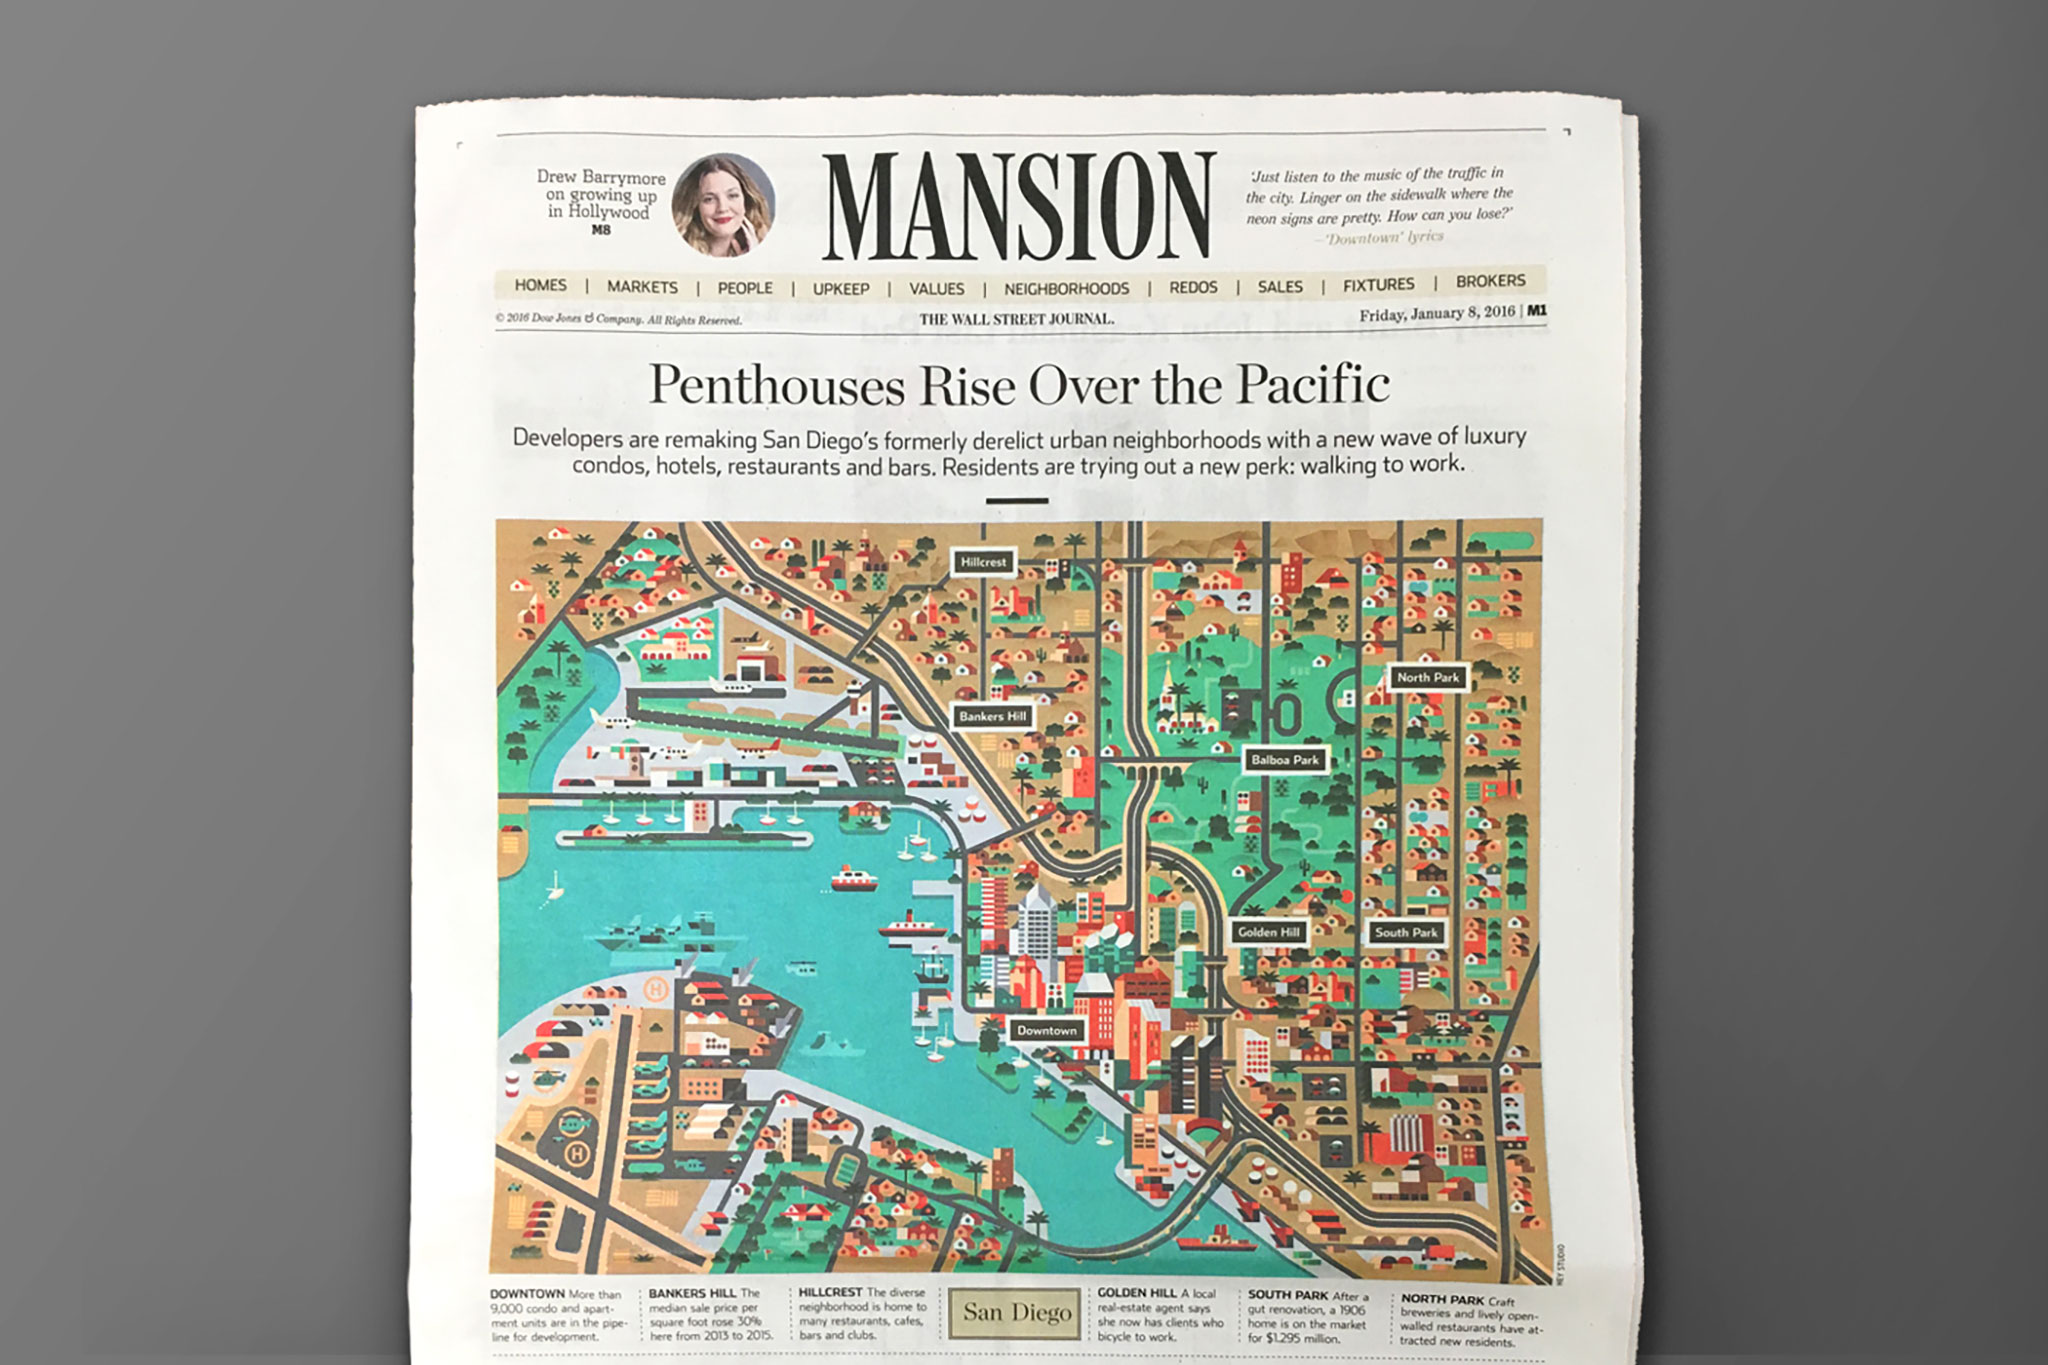 Mansion's maps - Hey on